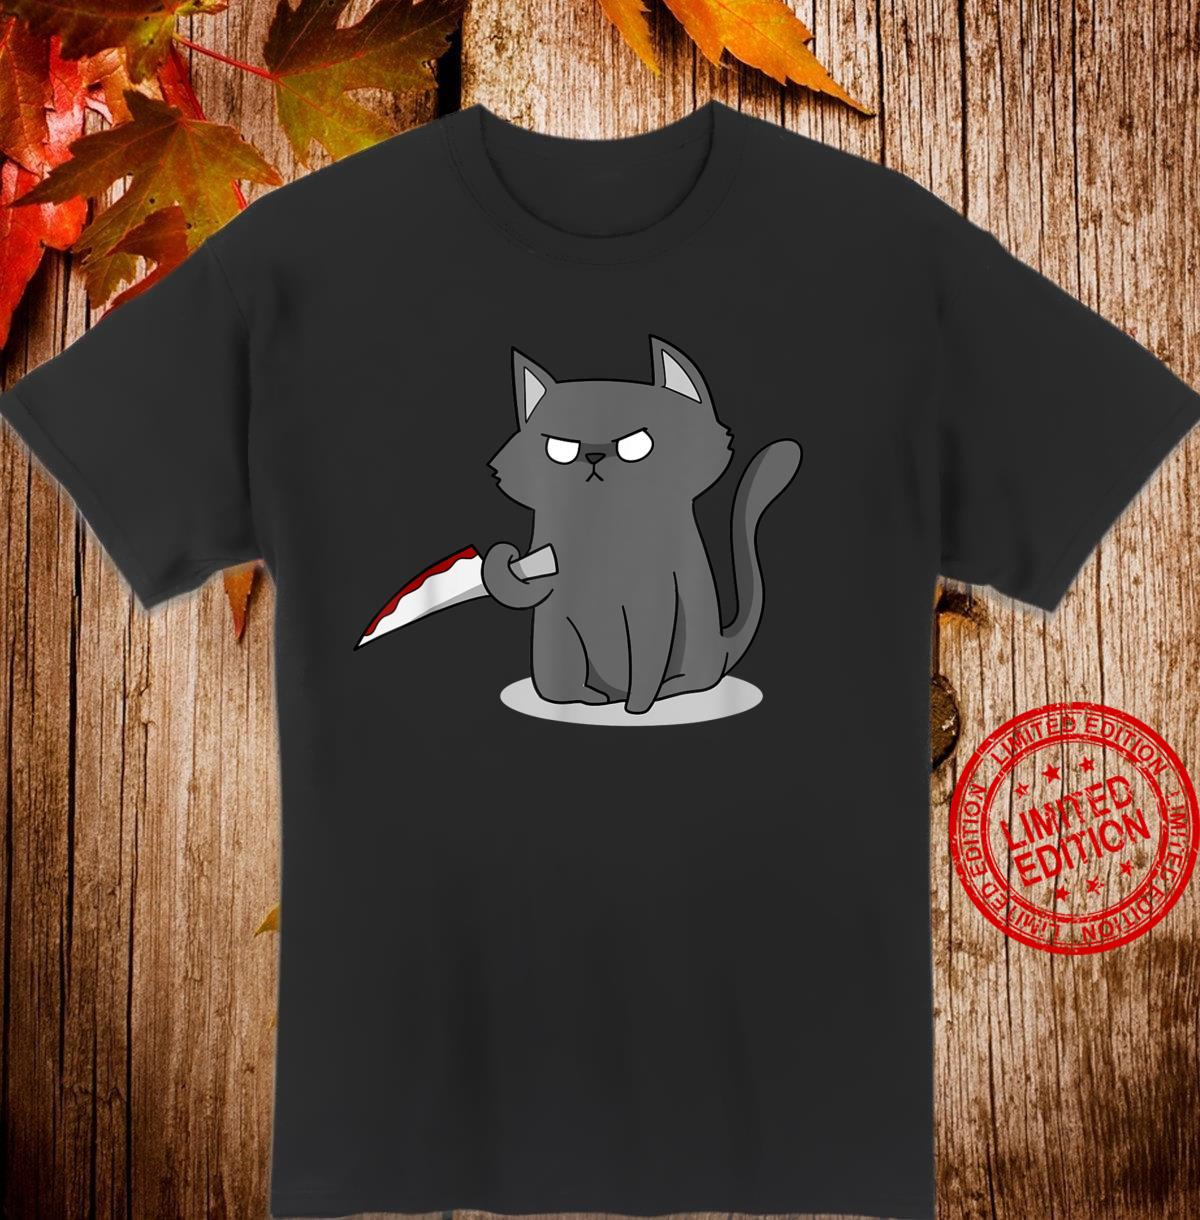 Cat Black I Cat Murderous I Cat With Knife I Cat Shirt